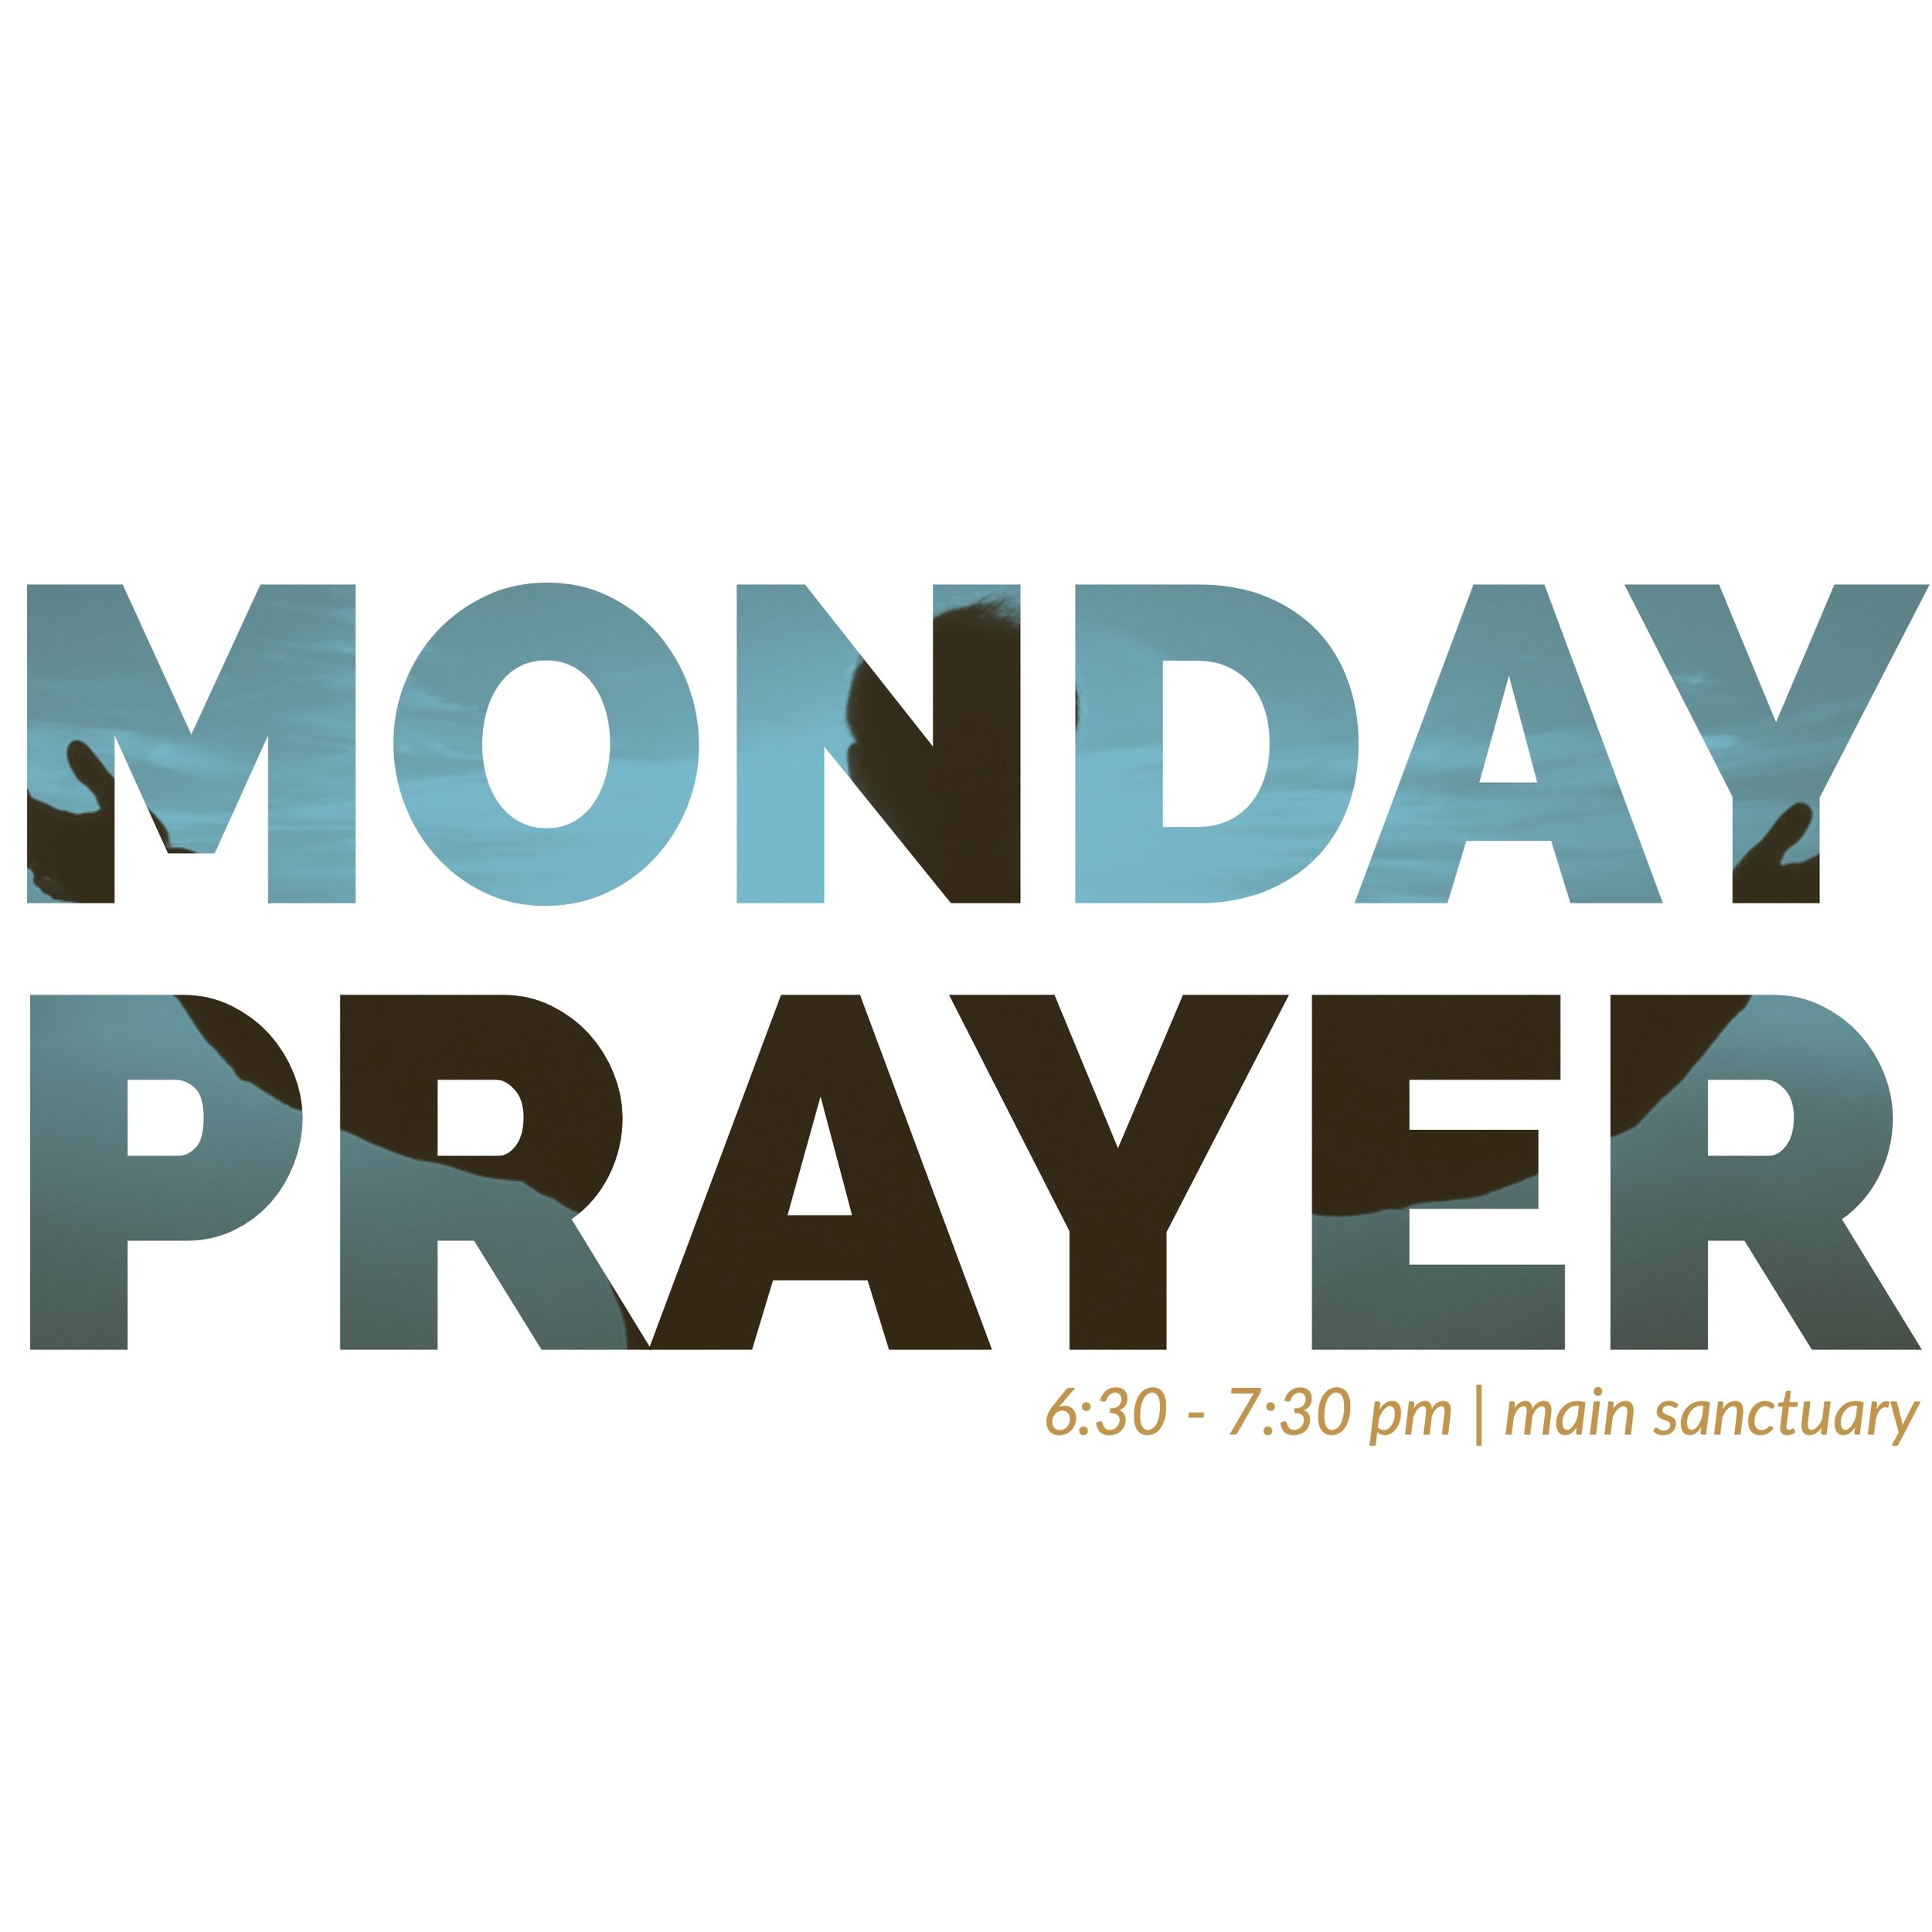 Monday Night Prayer service at The Anchor Church, 6:30 - 7:30pm | main sanctuary